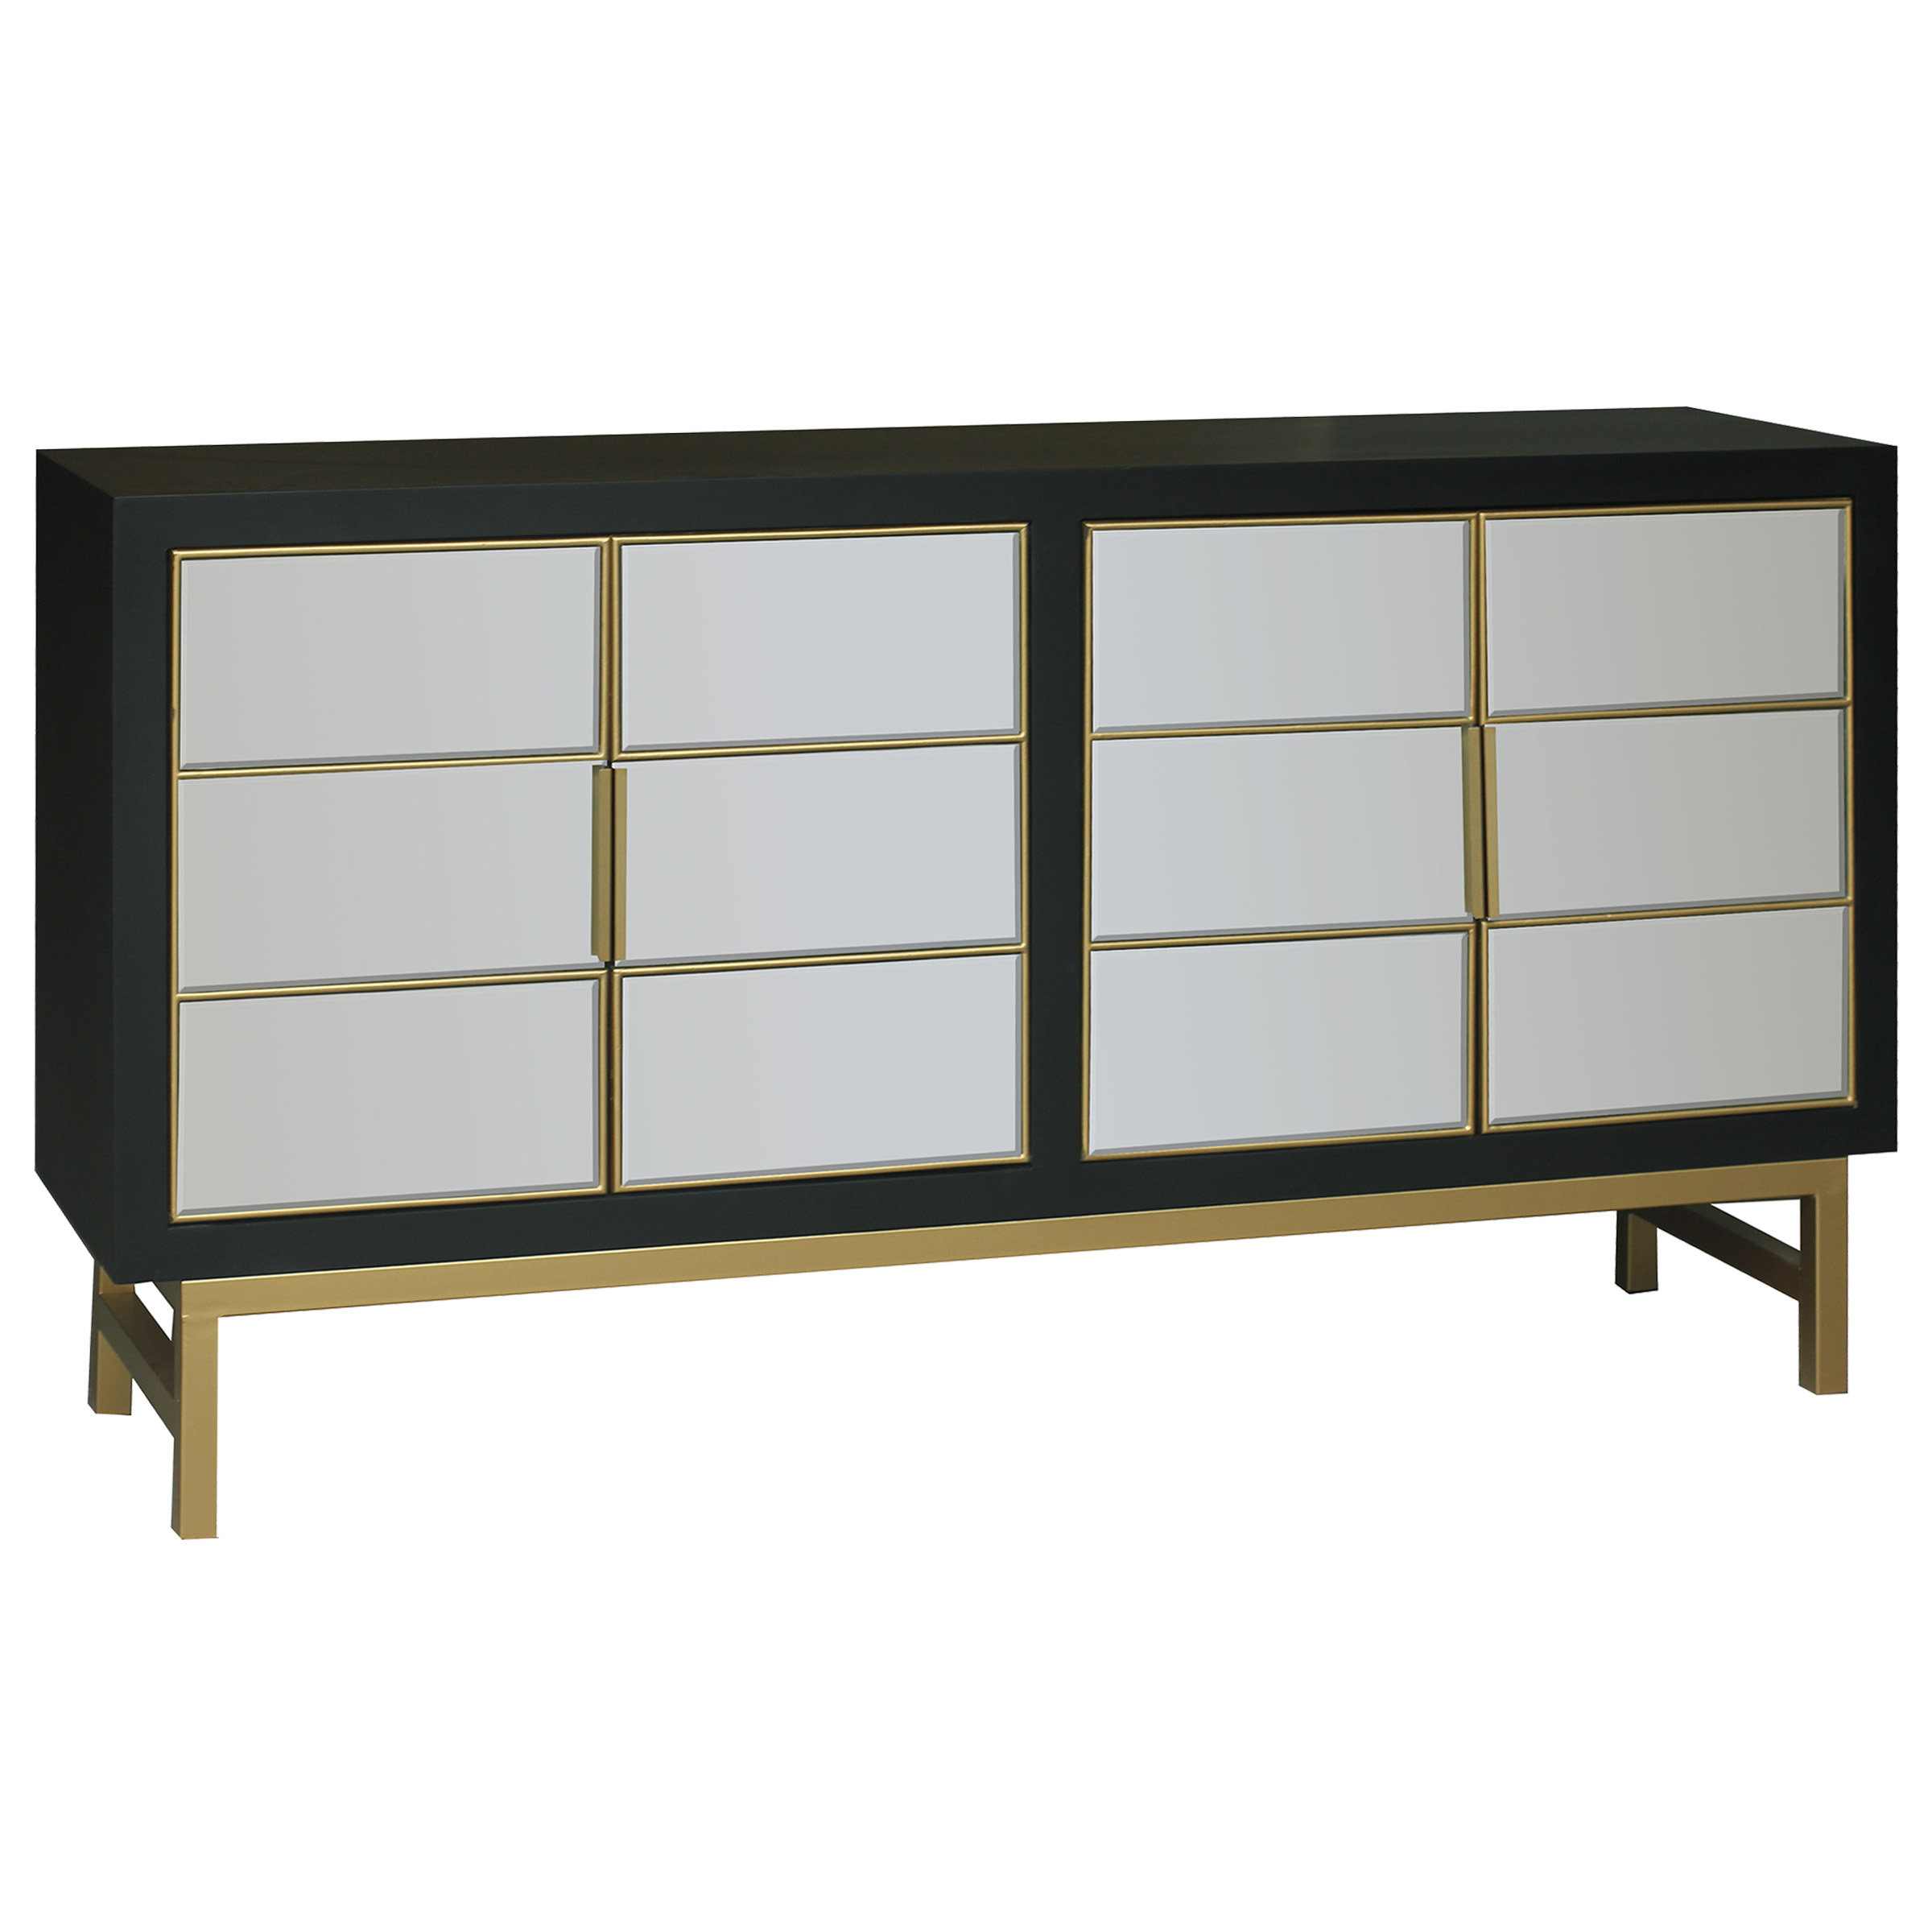 Wayfair Intended For Candace Door Credenzas (View 20 of 20)